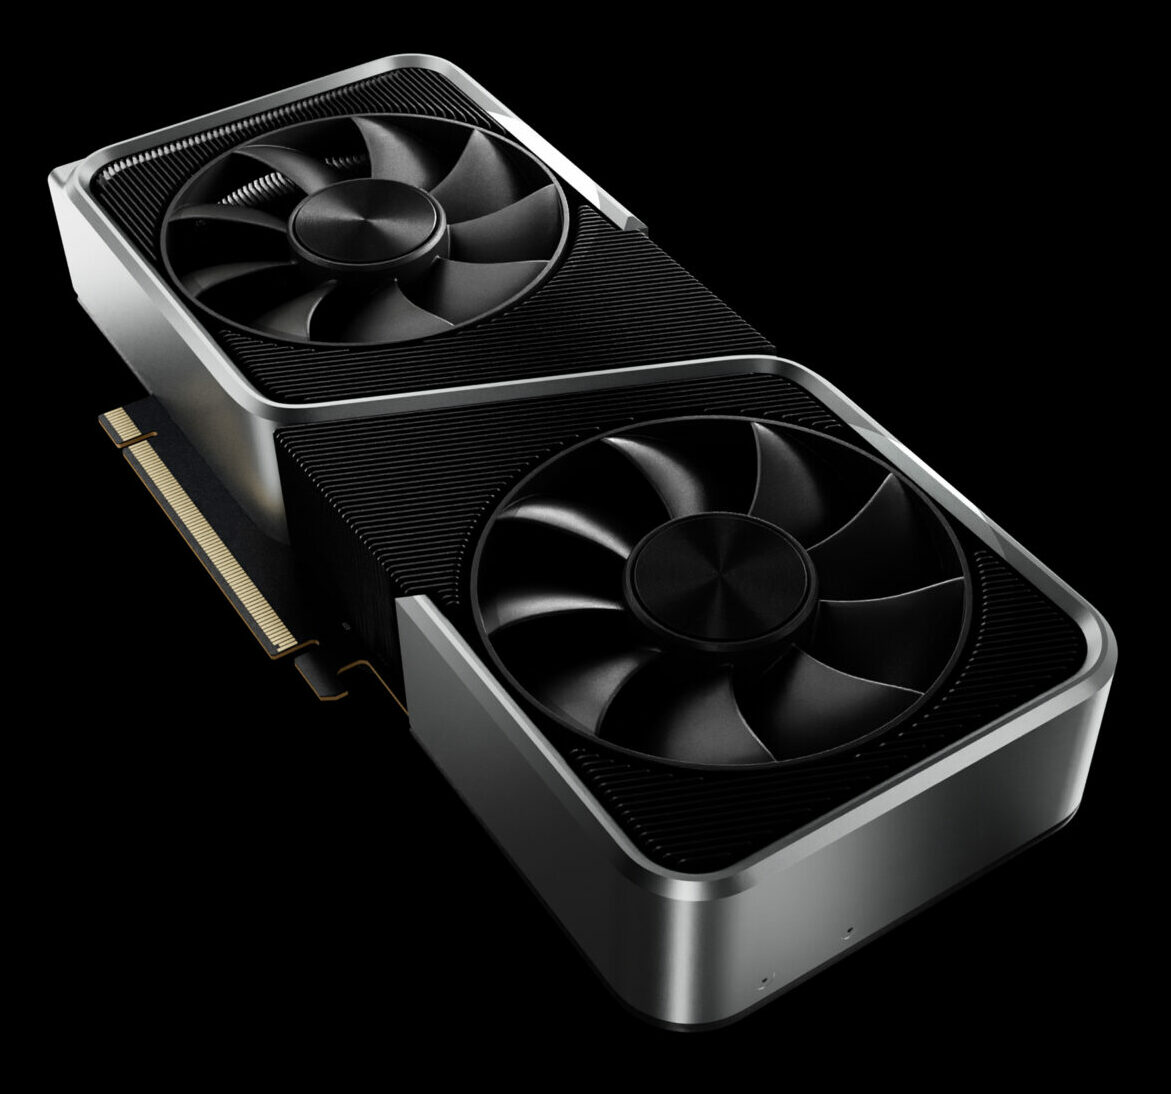 geforce-rtx-3060-ti-product-gallery-full-screen-3840-3-bl